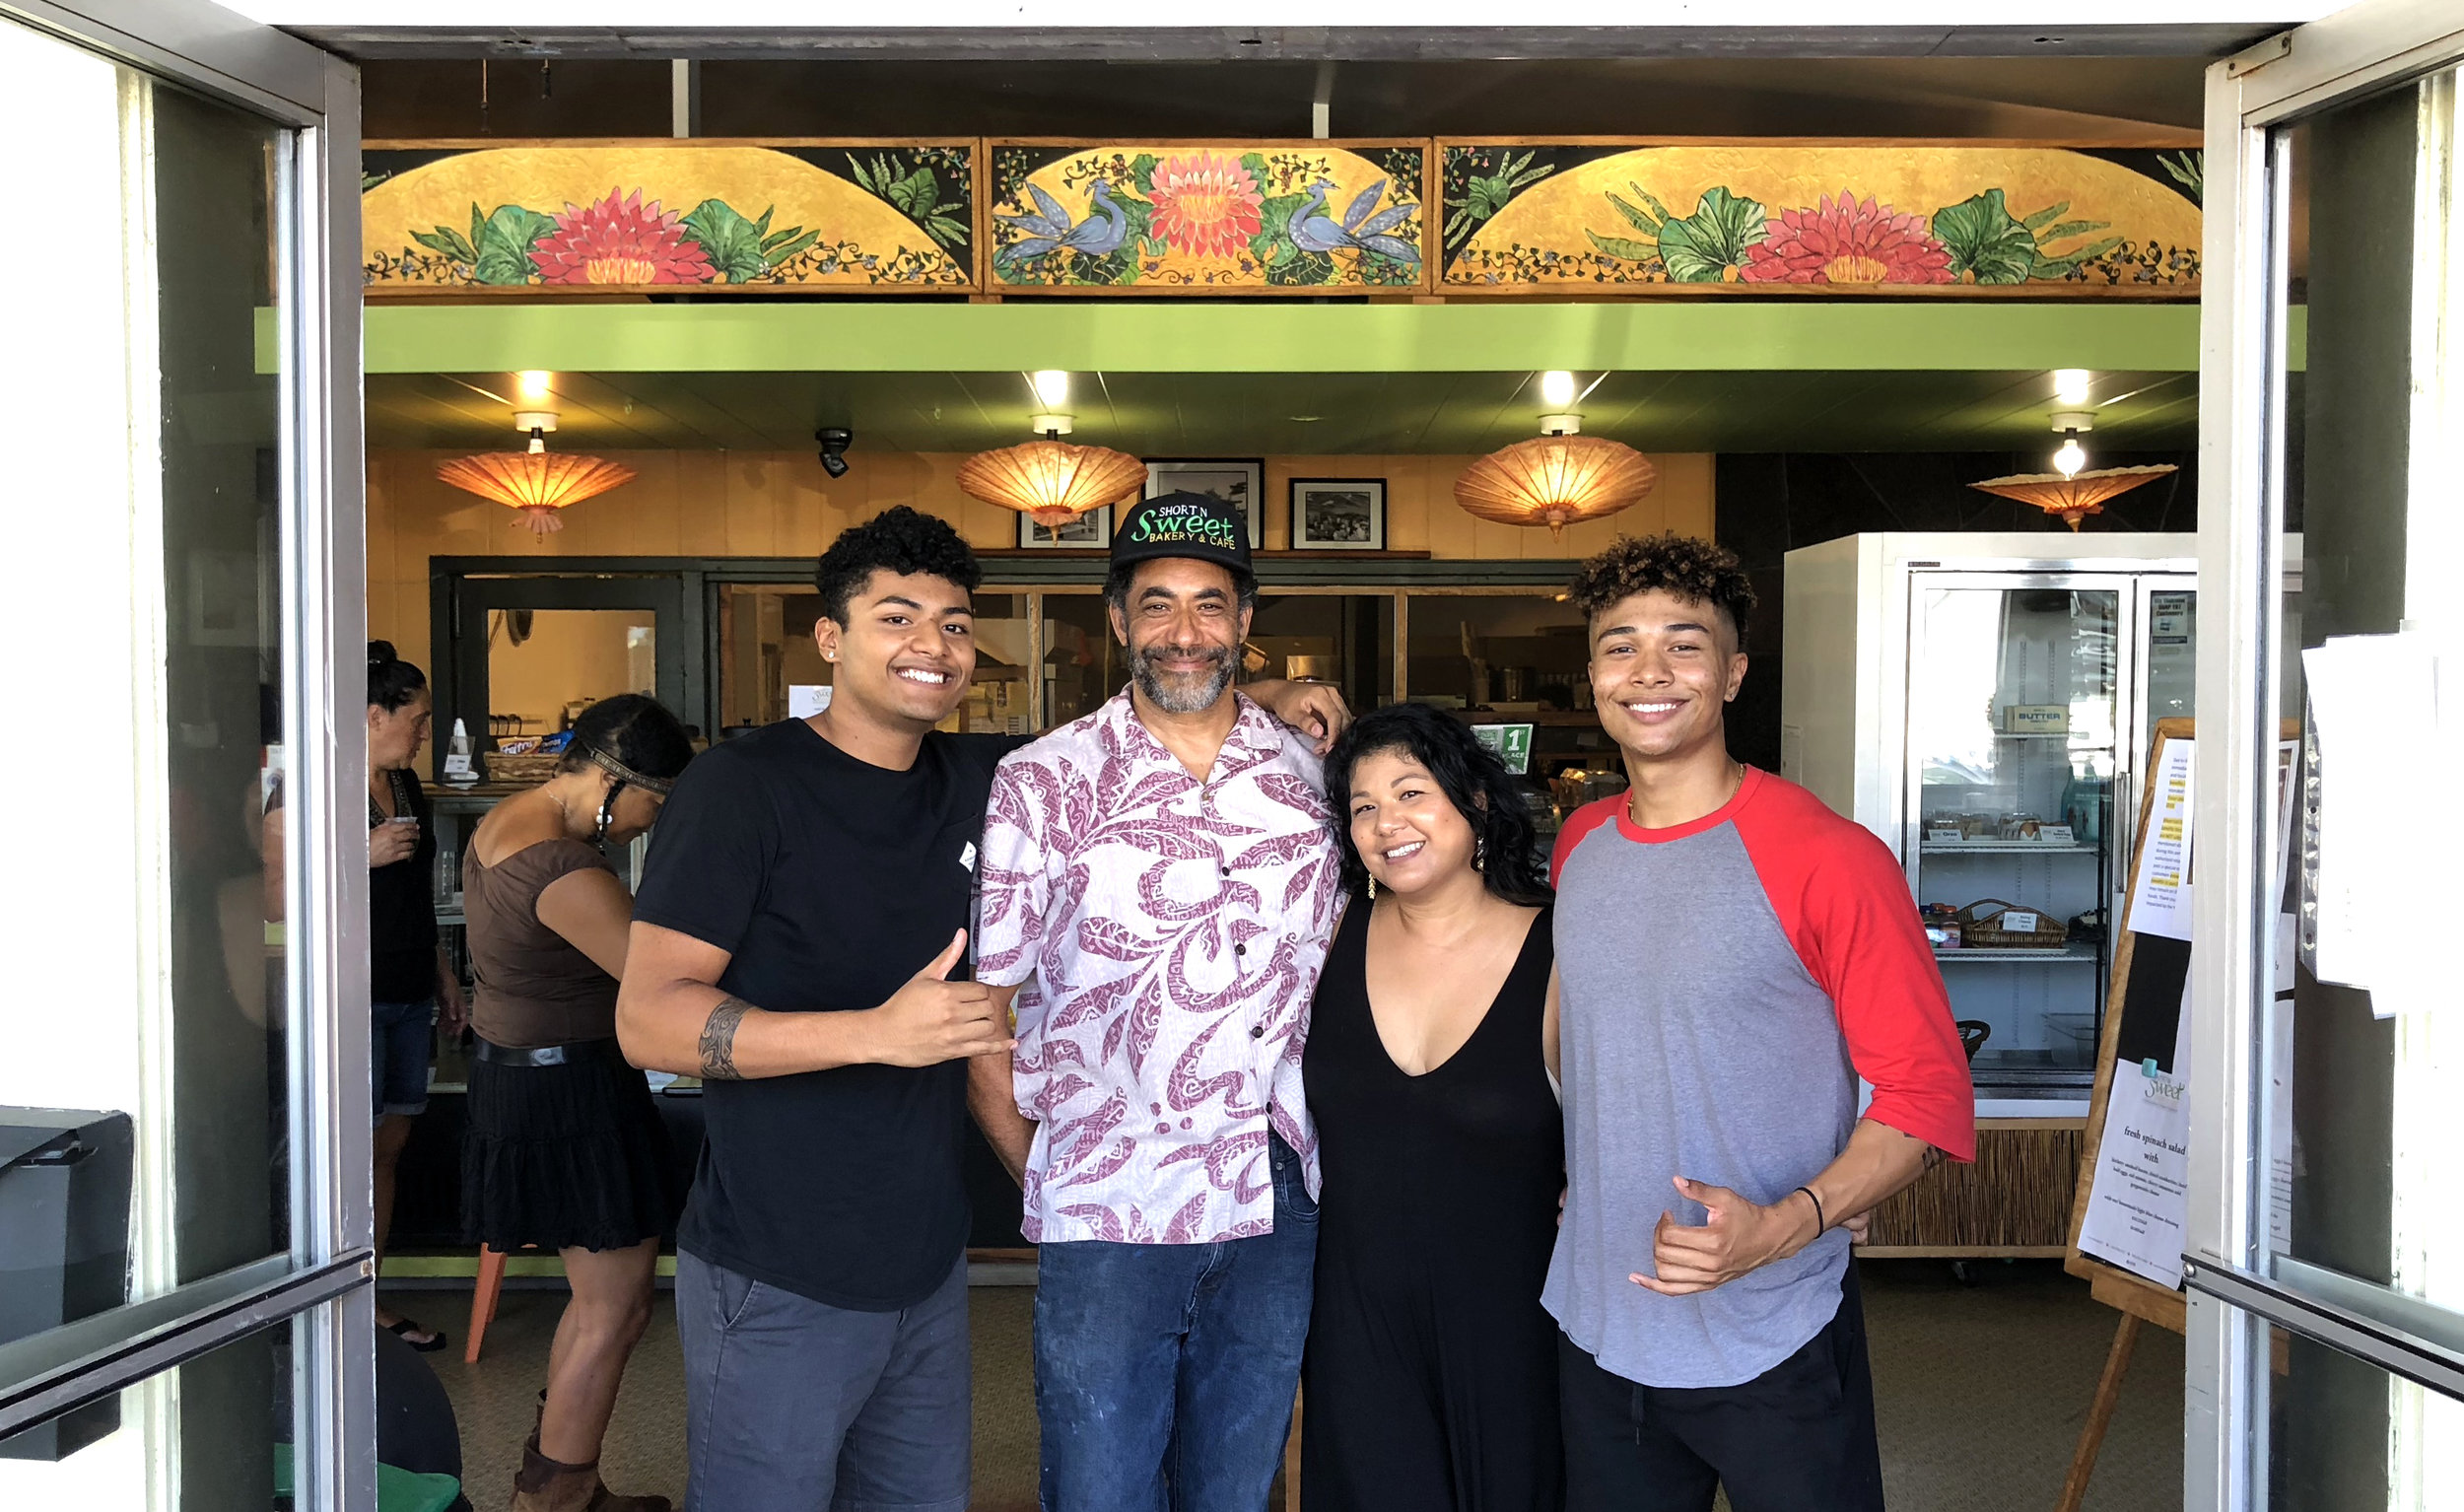 The Short Family at their family owned and operated Short-N-Sweet Bakery in Hilo, Hawaii.